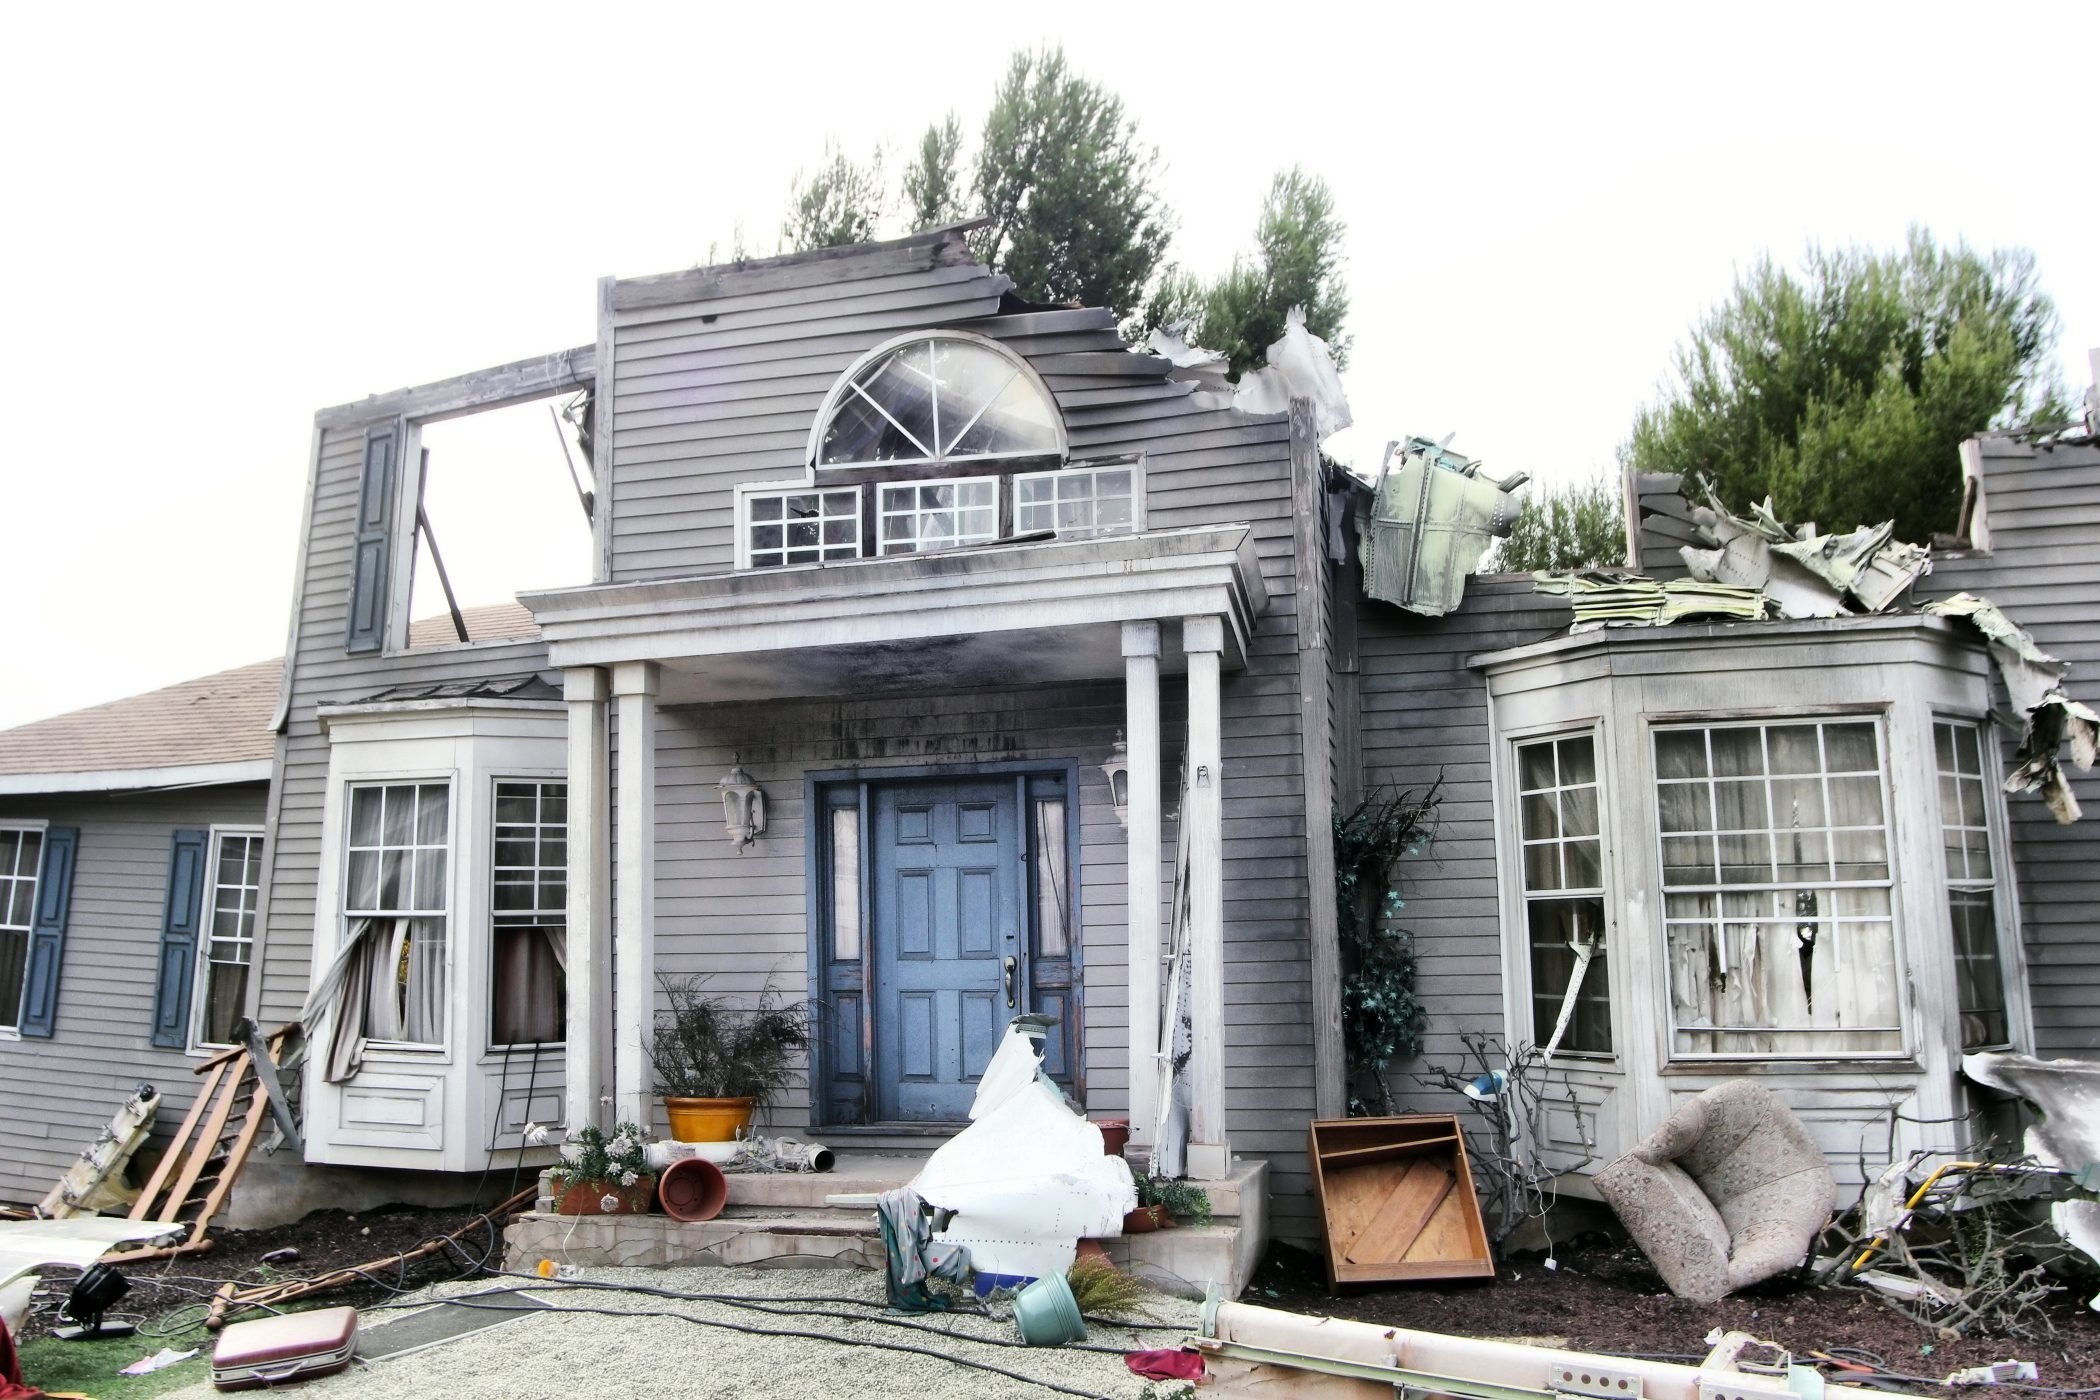 House damaged by disaster.